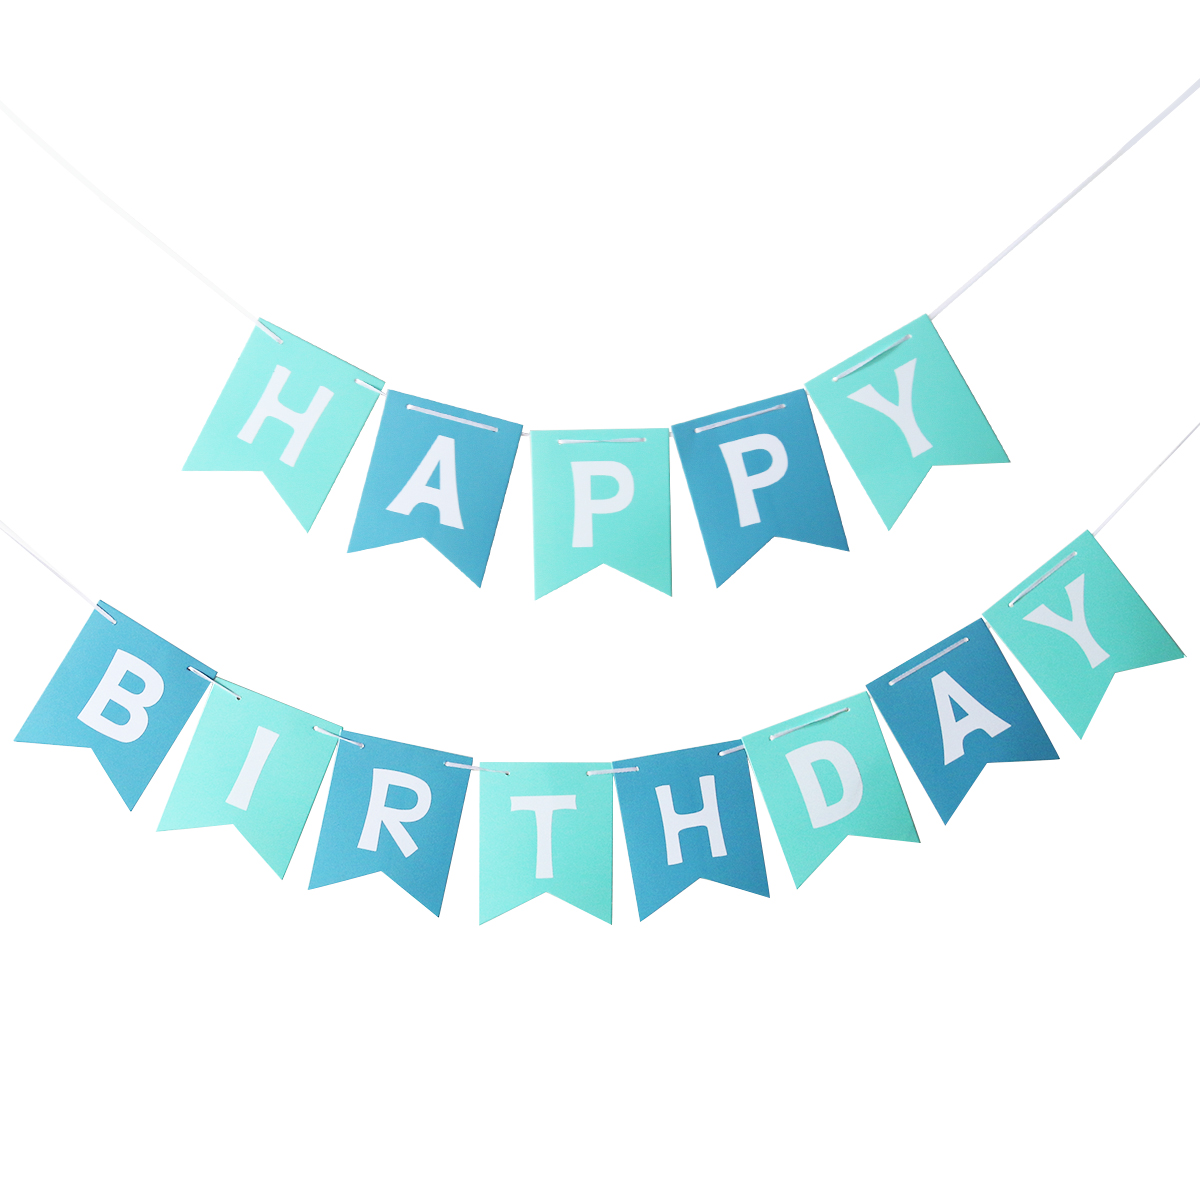 Compare Prices on Happy Birthday Banner- Online Shopping/Buy Low ...